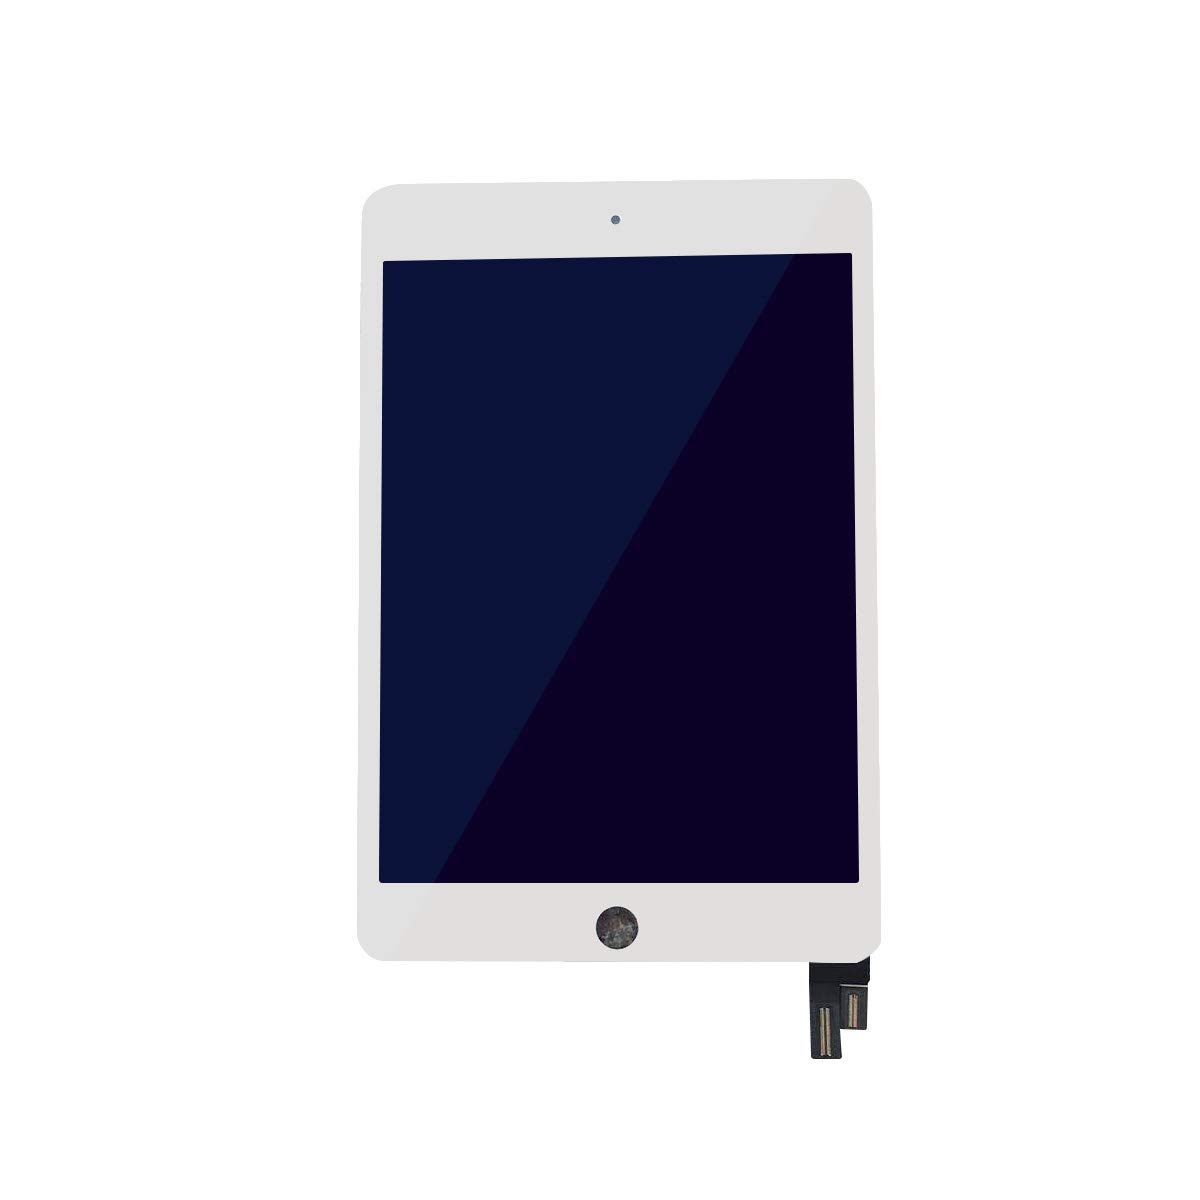 (Swifthorse) Replacement LCD Touch Screen Assembly Compatible with IPAD Mini 4 Model A1538 A1550 (White)+ Free Teardown Tool